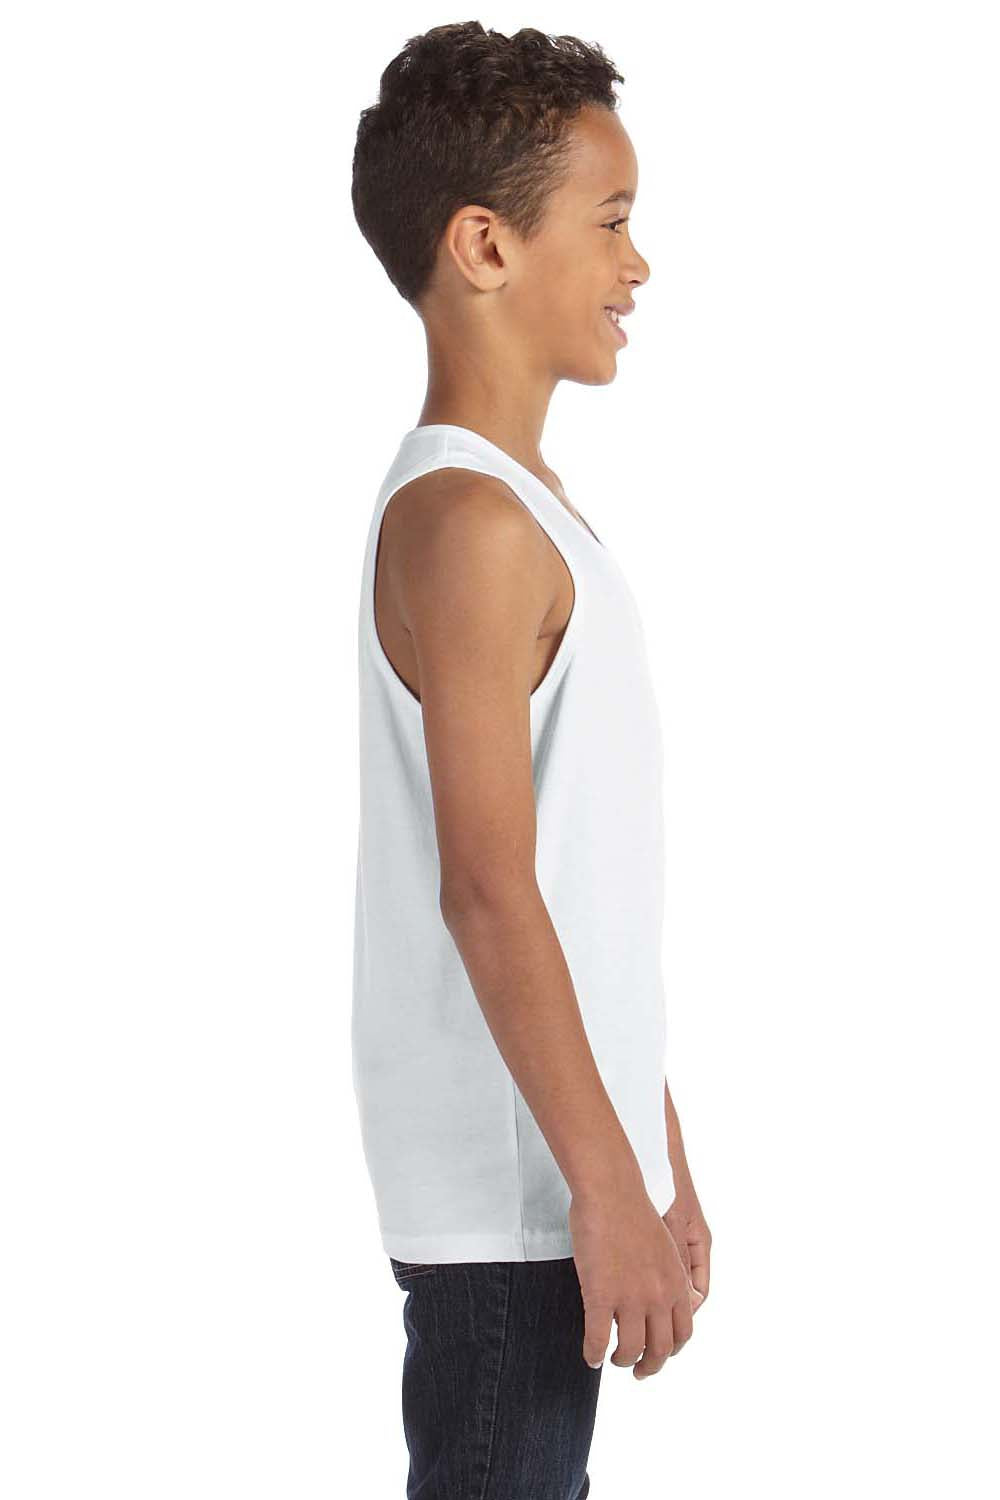 Bella + Canvas 3480Y Youth Jersey Tank Top White Side